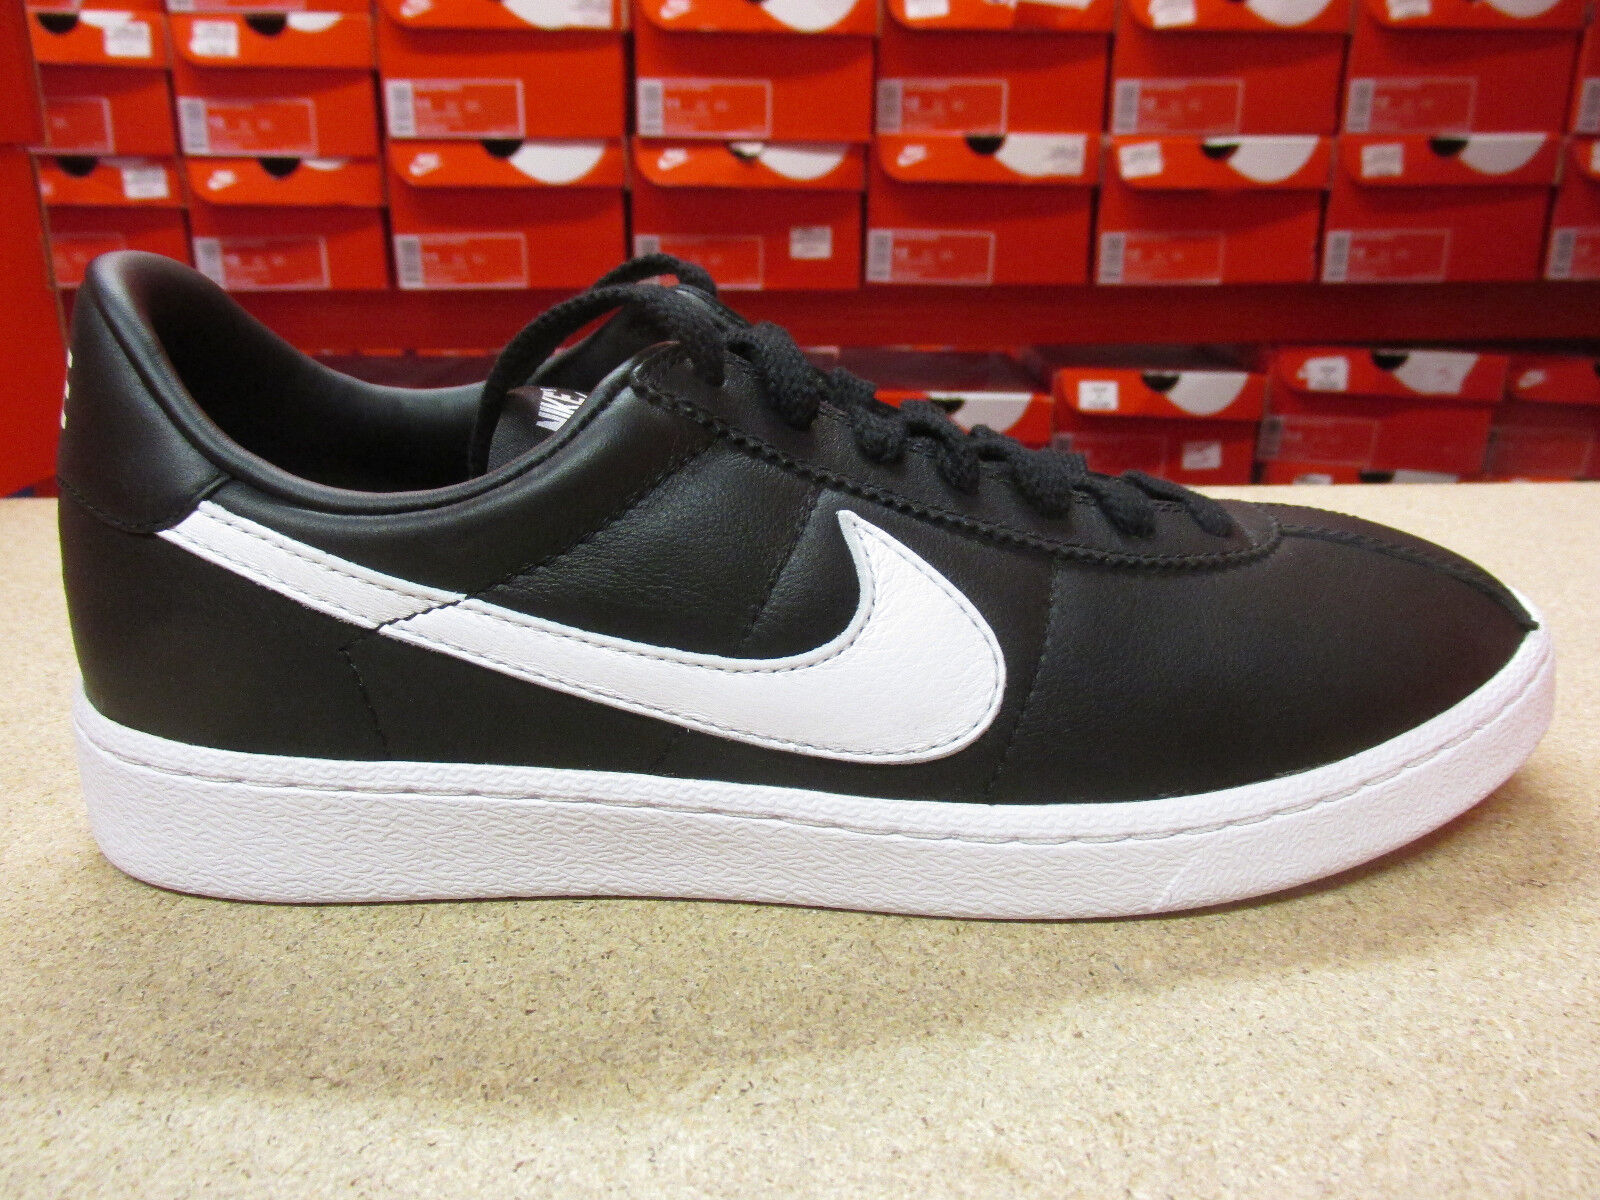 Nike Bruin QS Hombre Trainers Trainers Trainers 842956 001 Sneakers Zapatos d71f45